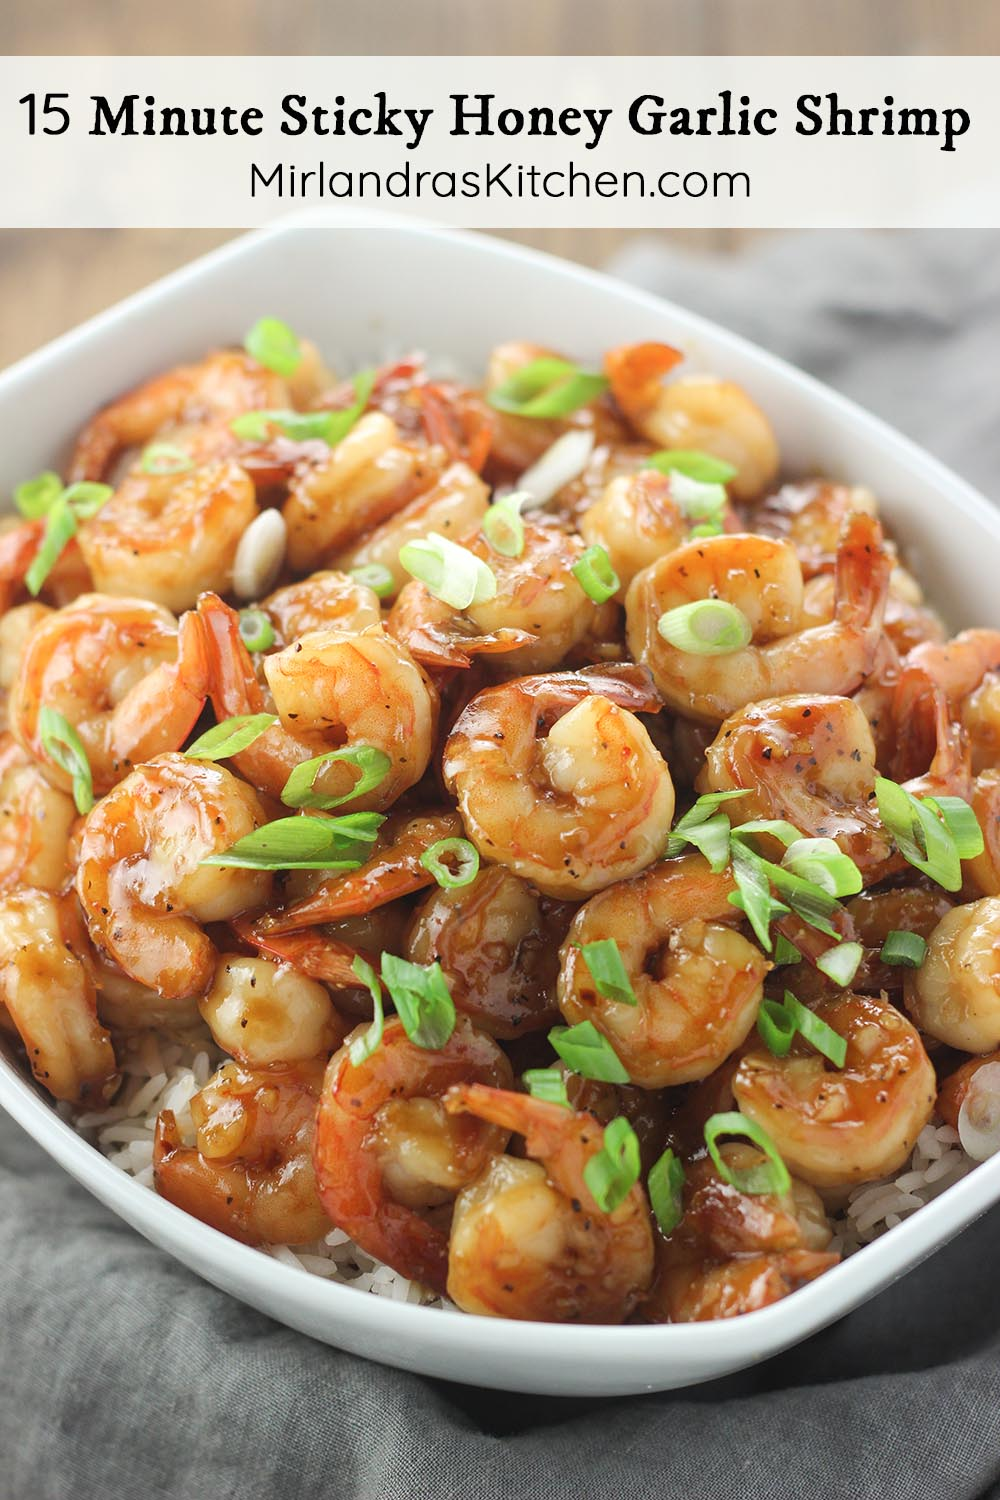 Sticky honey garlic shrimp is a fast and healthy dinner full of flavor with just the right amount of stickiness. This Asian take on shrimp is always a hit! Serve it over rice or individually as a party food if you like. Either way, be prepared for it to disappear quickly!